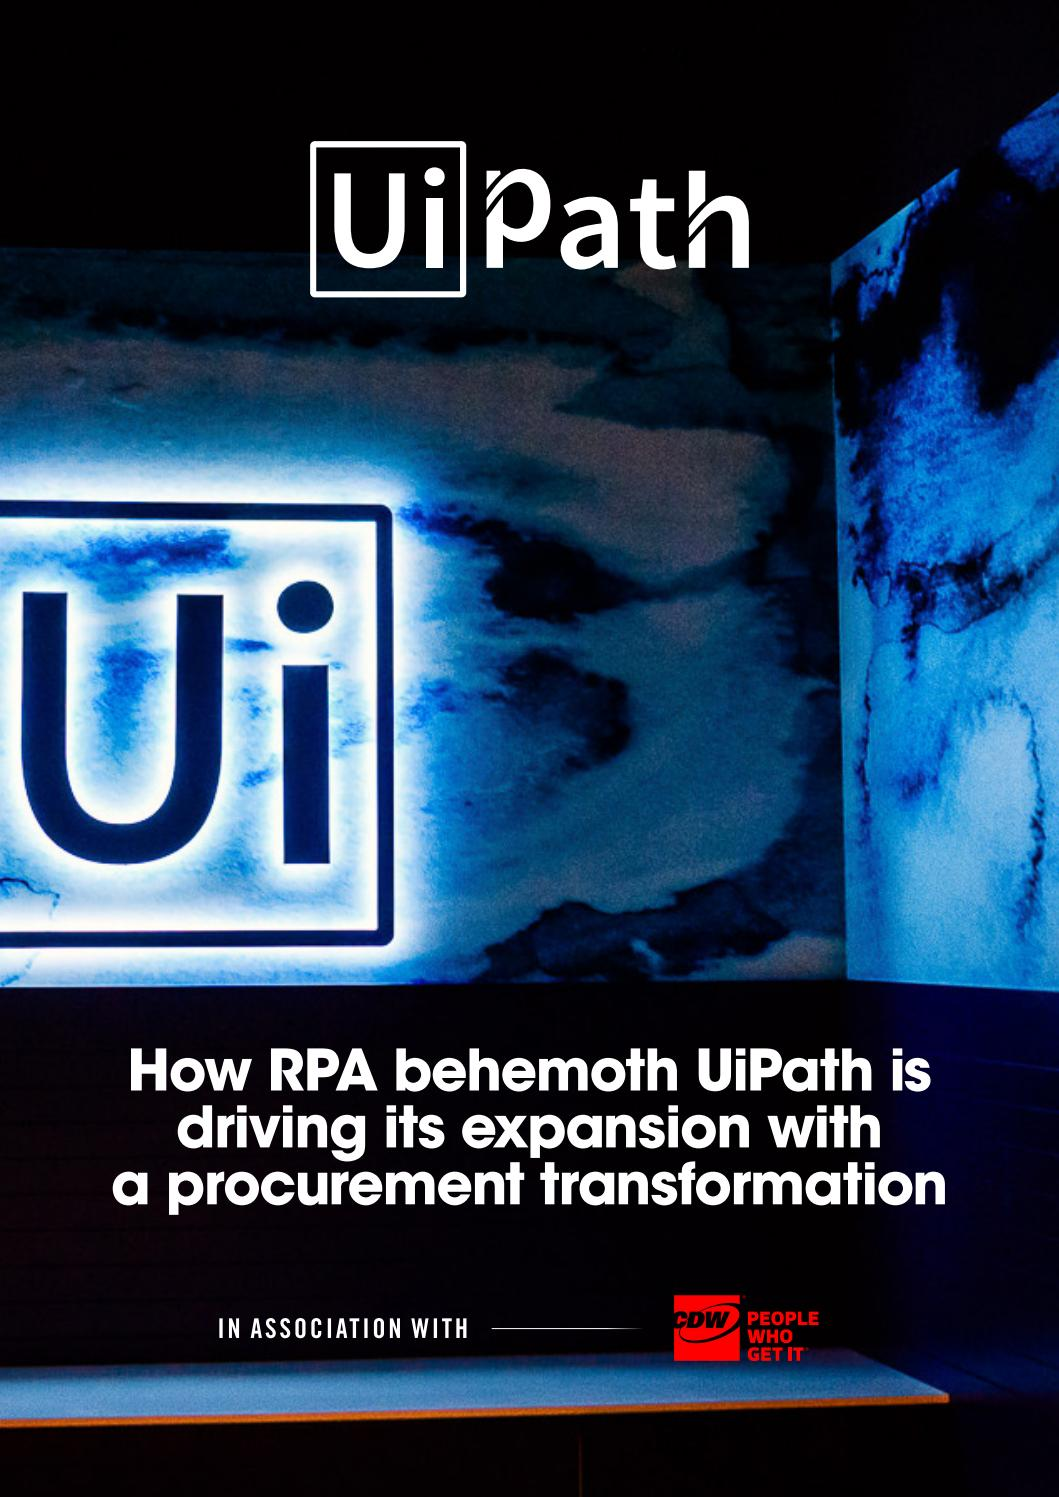 UiPath Brochure 2019 by Supply Chain Digital - issuu